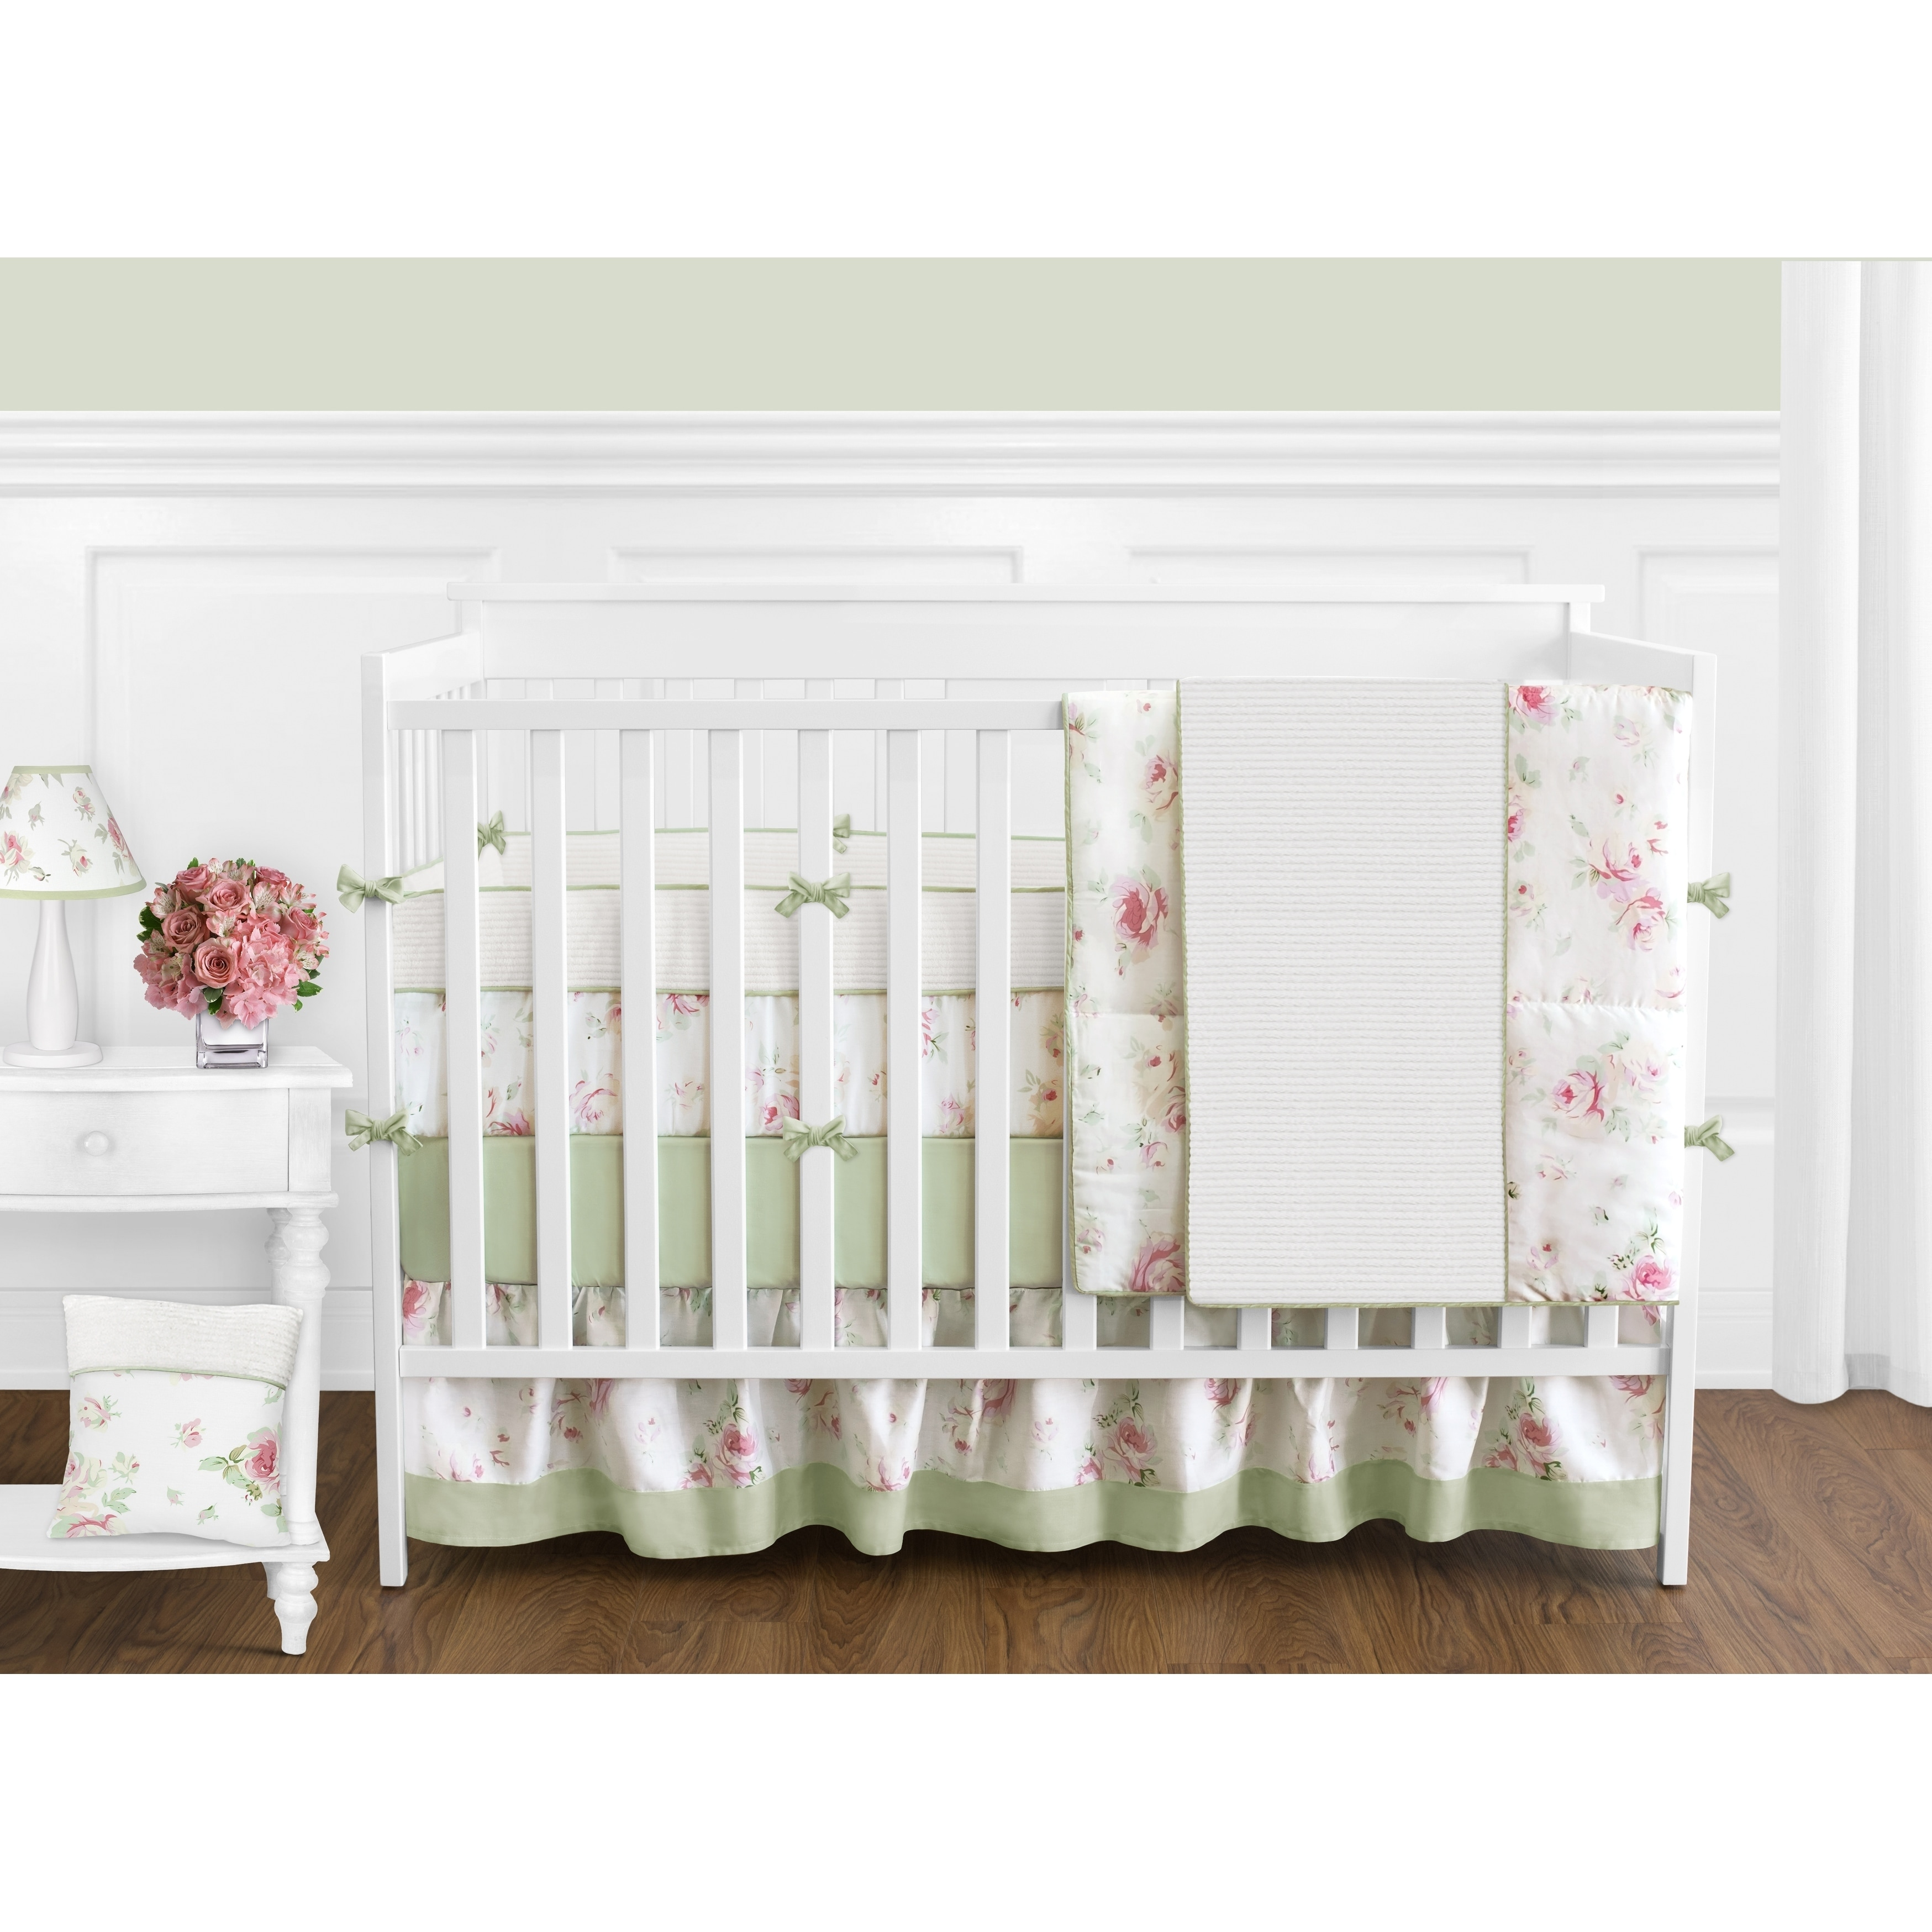 sweet is cribs jojo for room pics crib set new s the designs this reagan jungle beautiful bedding jeseniacoant of baby